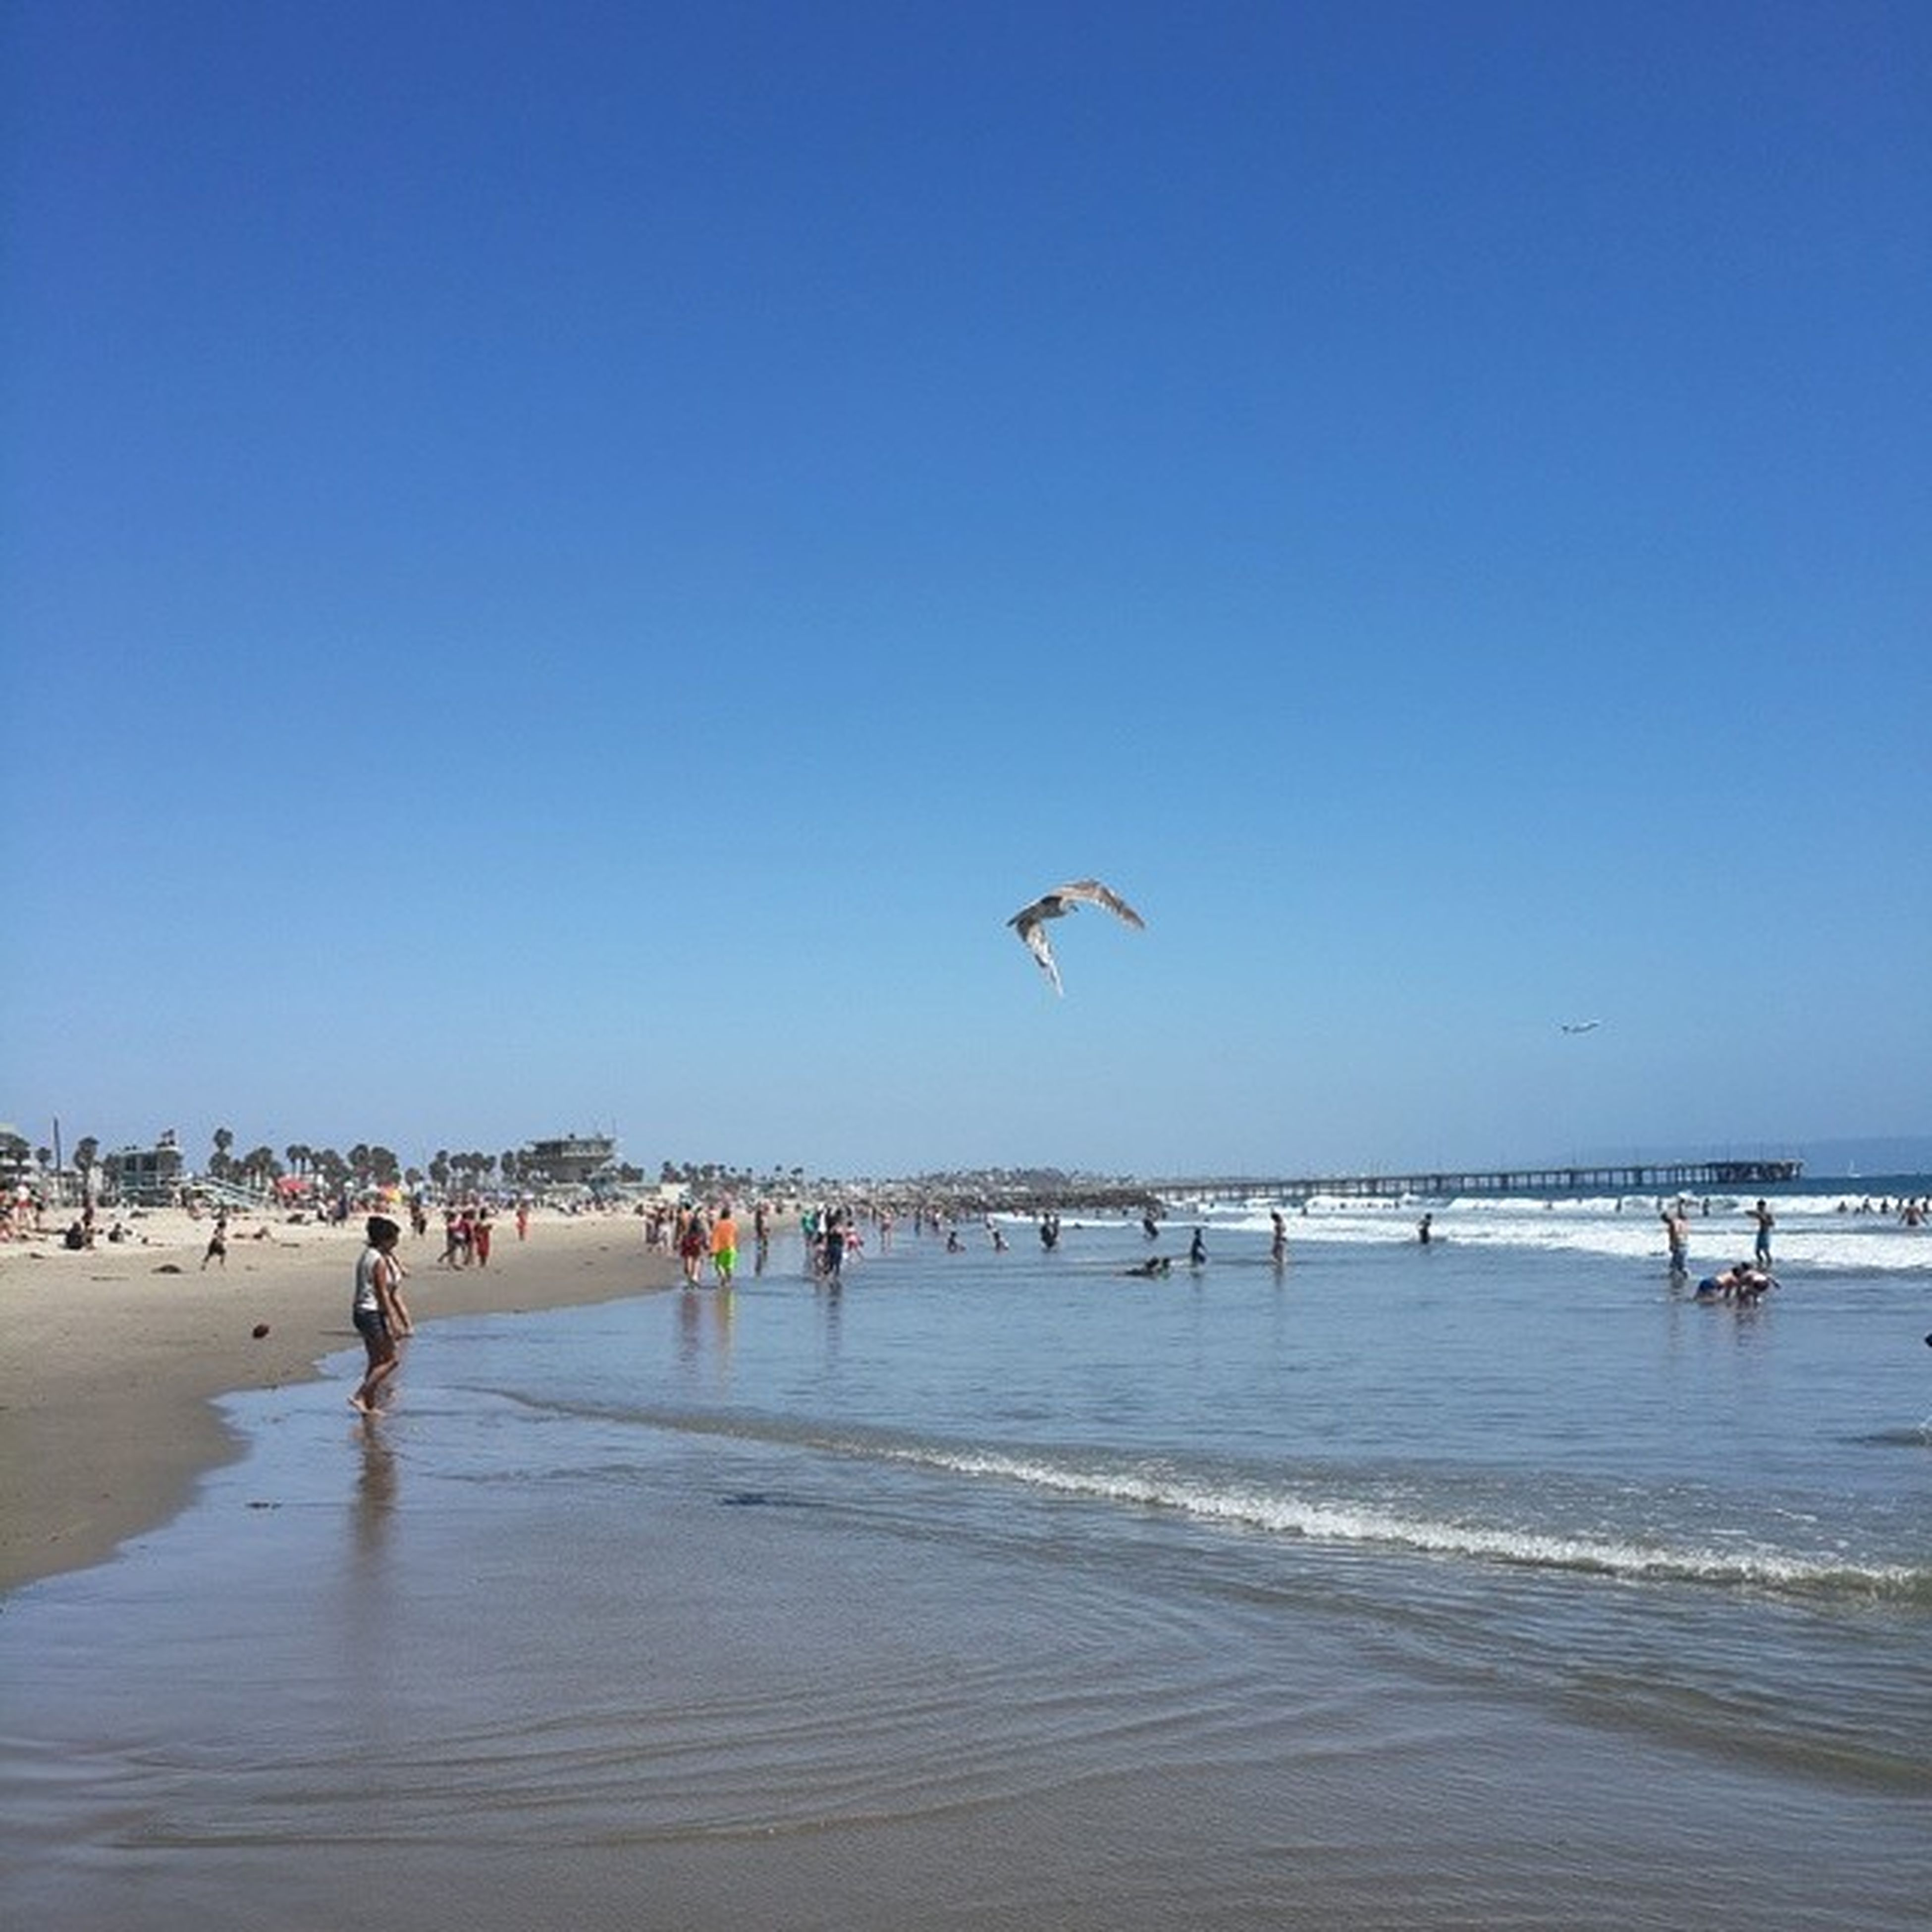 sea, beach, clear sky, water, flying, copy space, blue, bird, sand, shore, horizon over water, animal themes, wildlife, mid-air, nature, tranquil scene, vacations, scenics, tranquility, beauty in nature